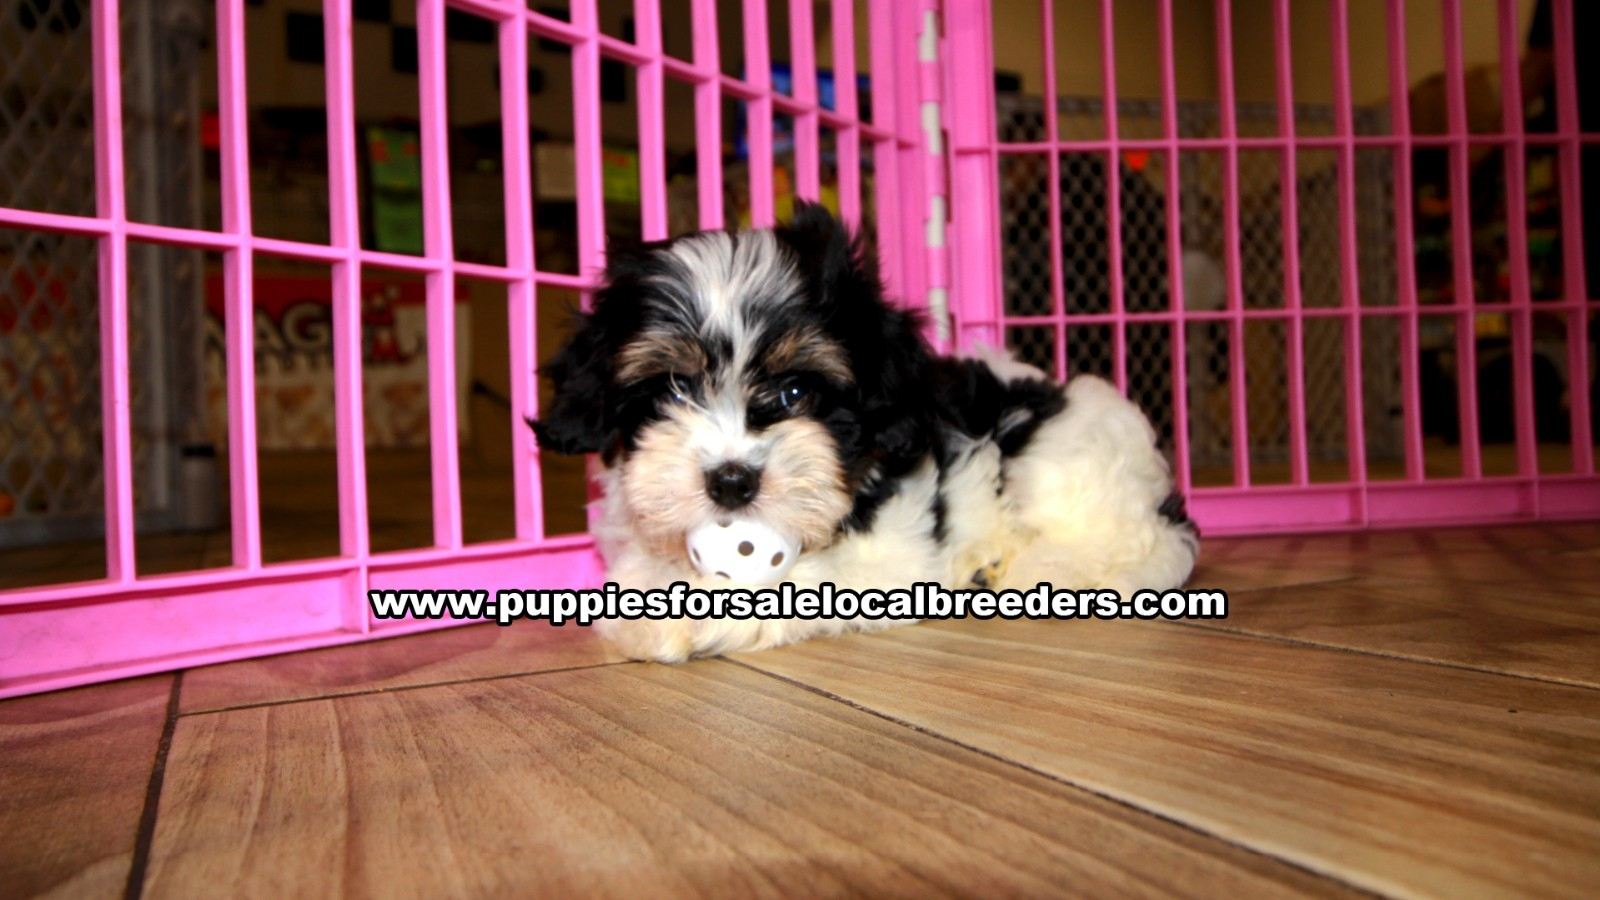 Tri Color Cavachon, Puppies For Sale In Georgia, Local Breeders, Near Atlanta, Ga